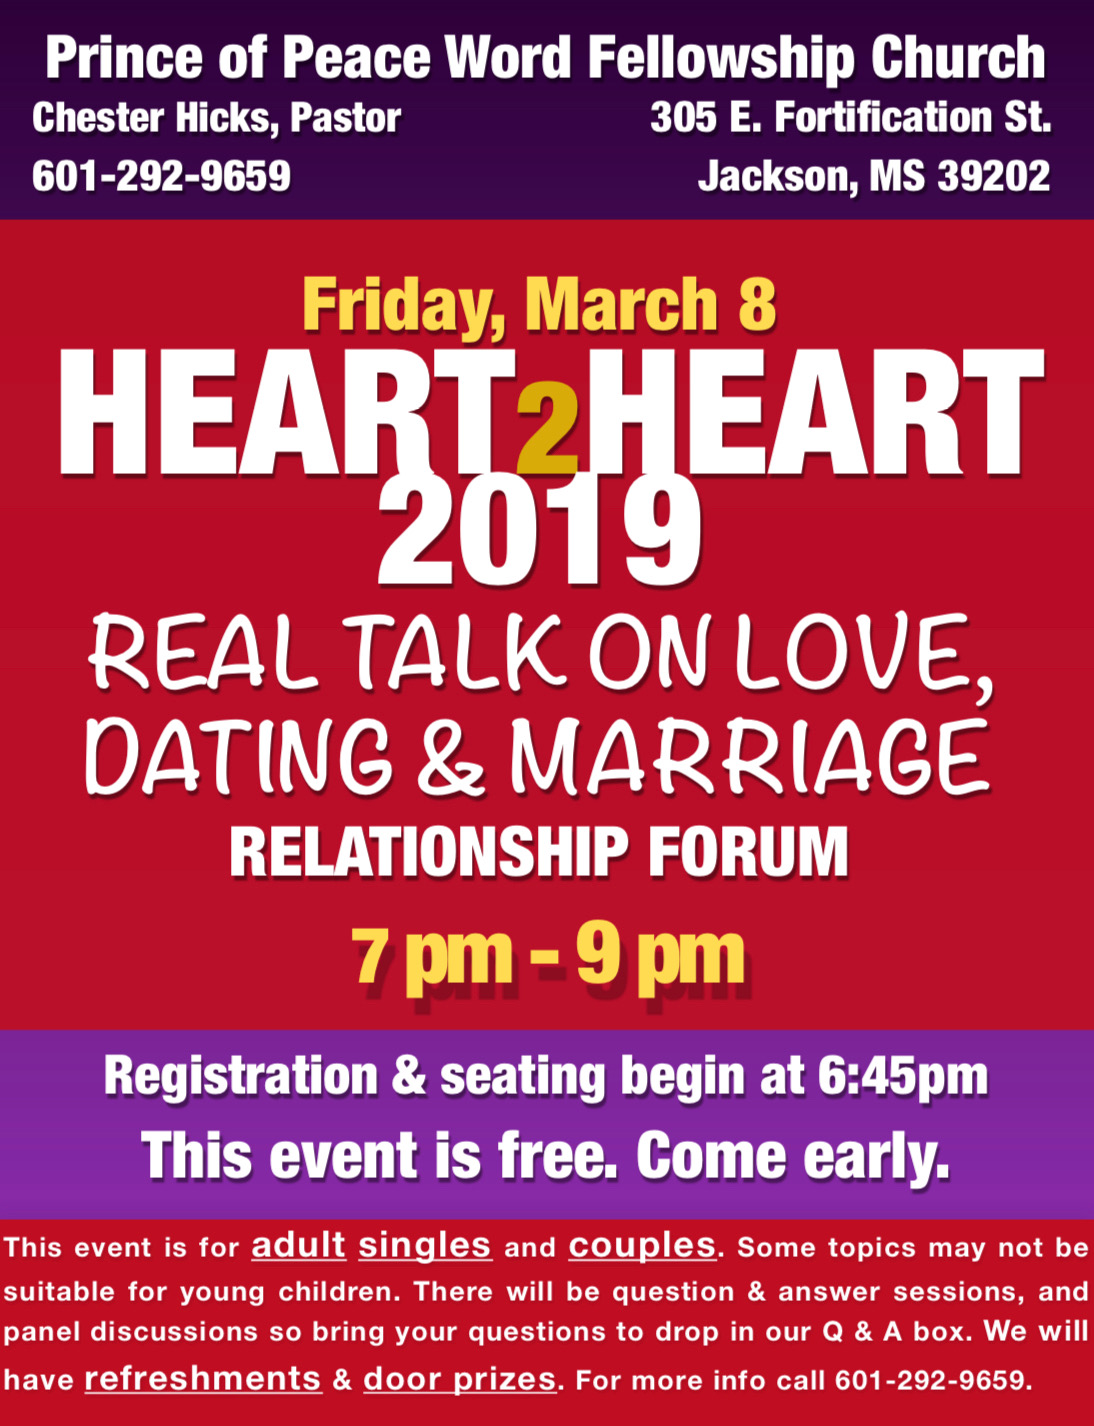 2019 Heart 2 Heart Relationship Forum — Prince of Peace Word